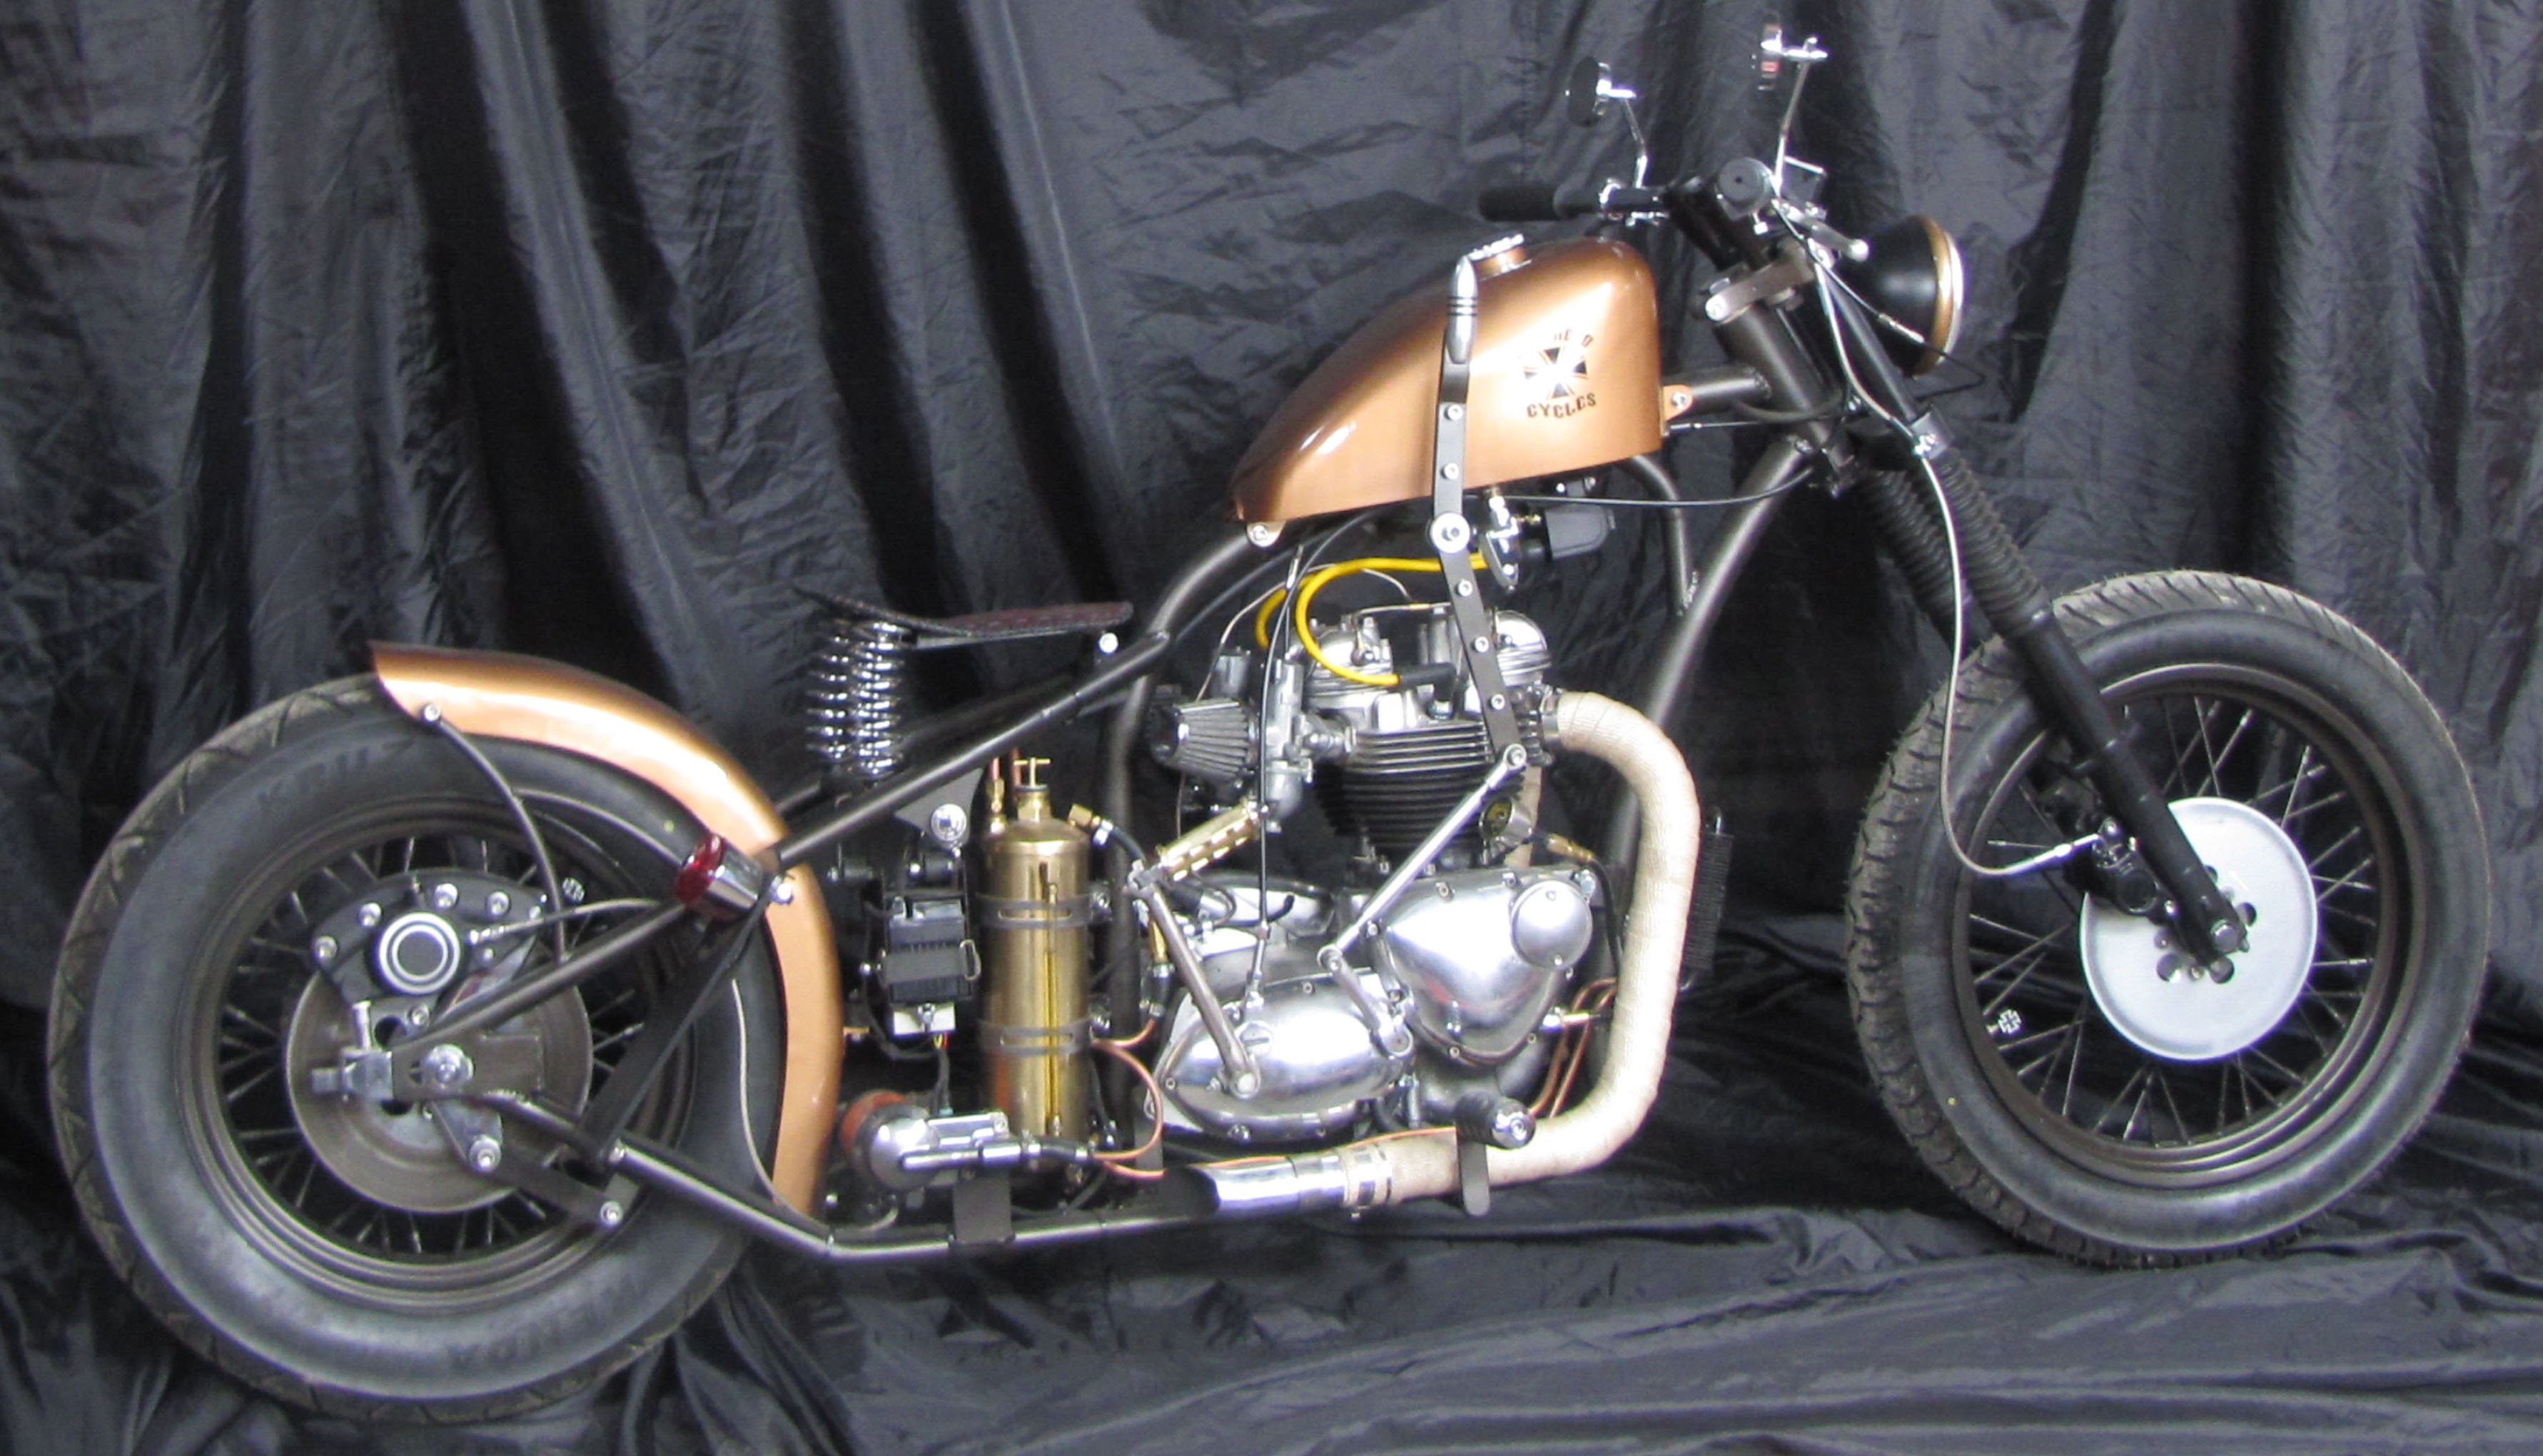 1967 Triumph TR6R Trophy Bobber Motorcycle